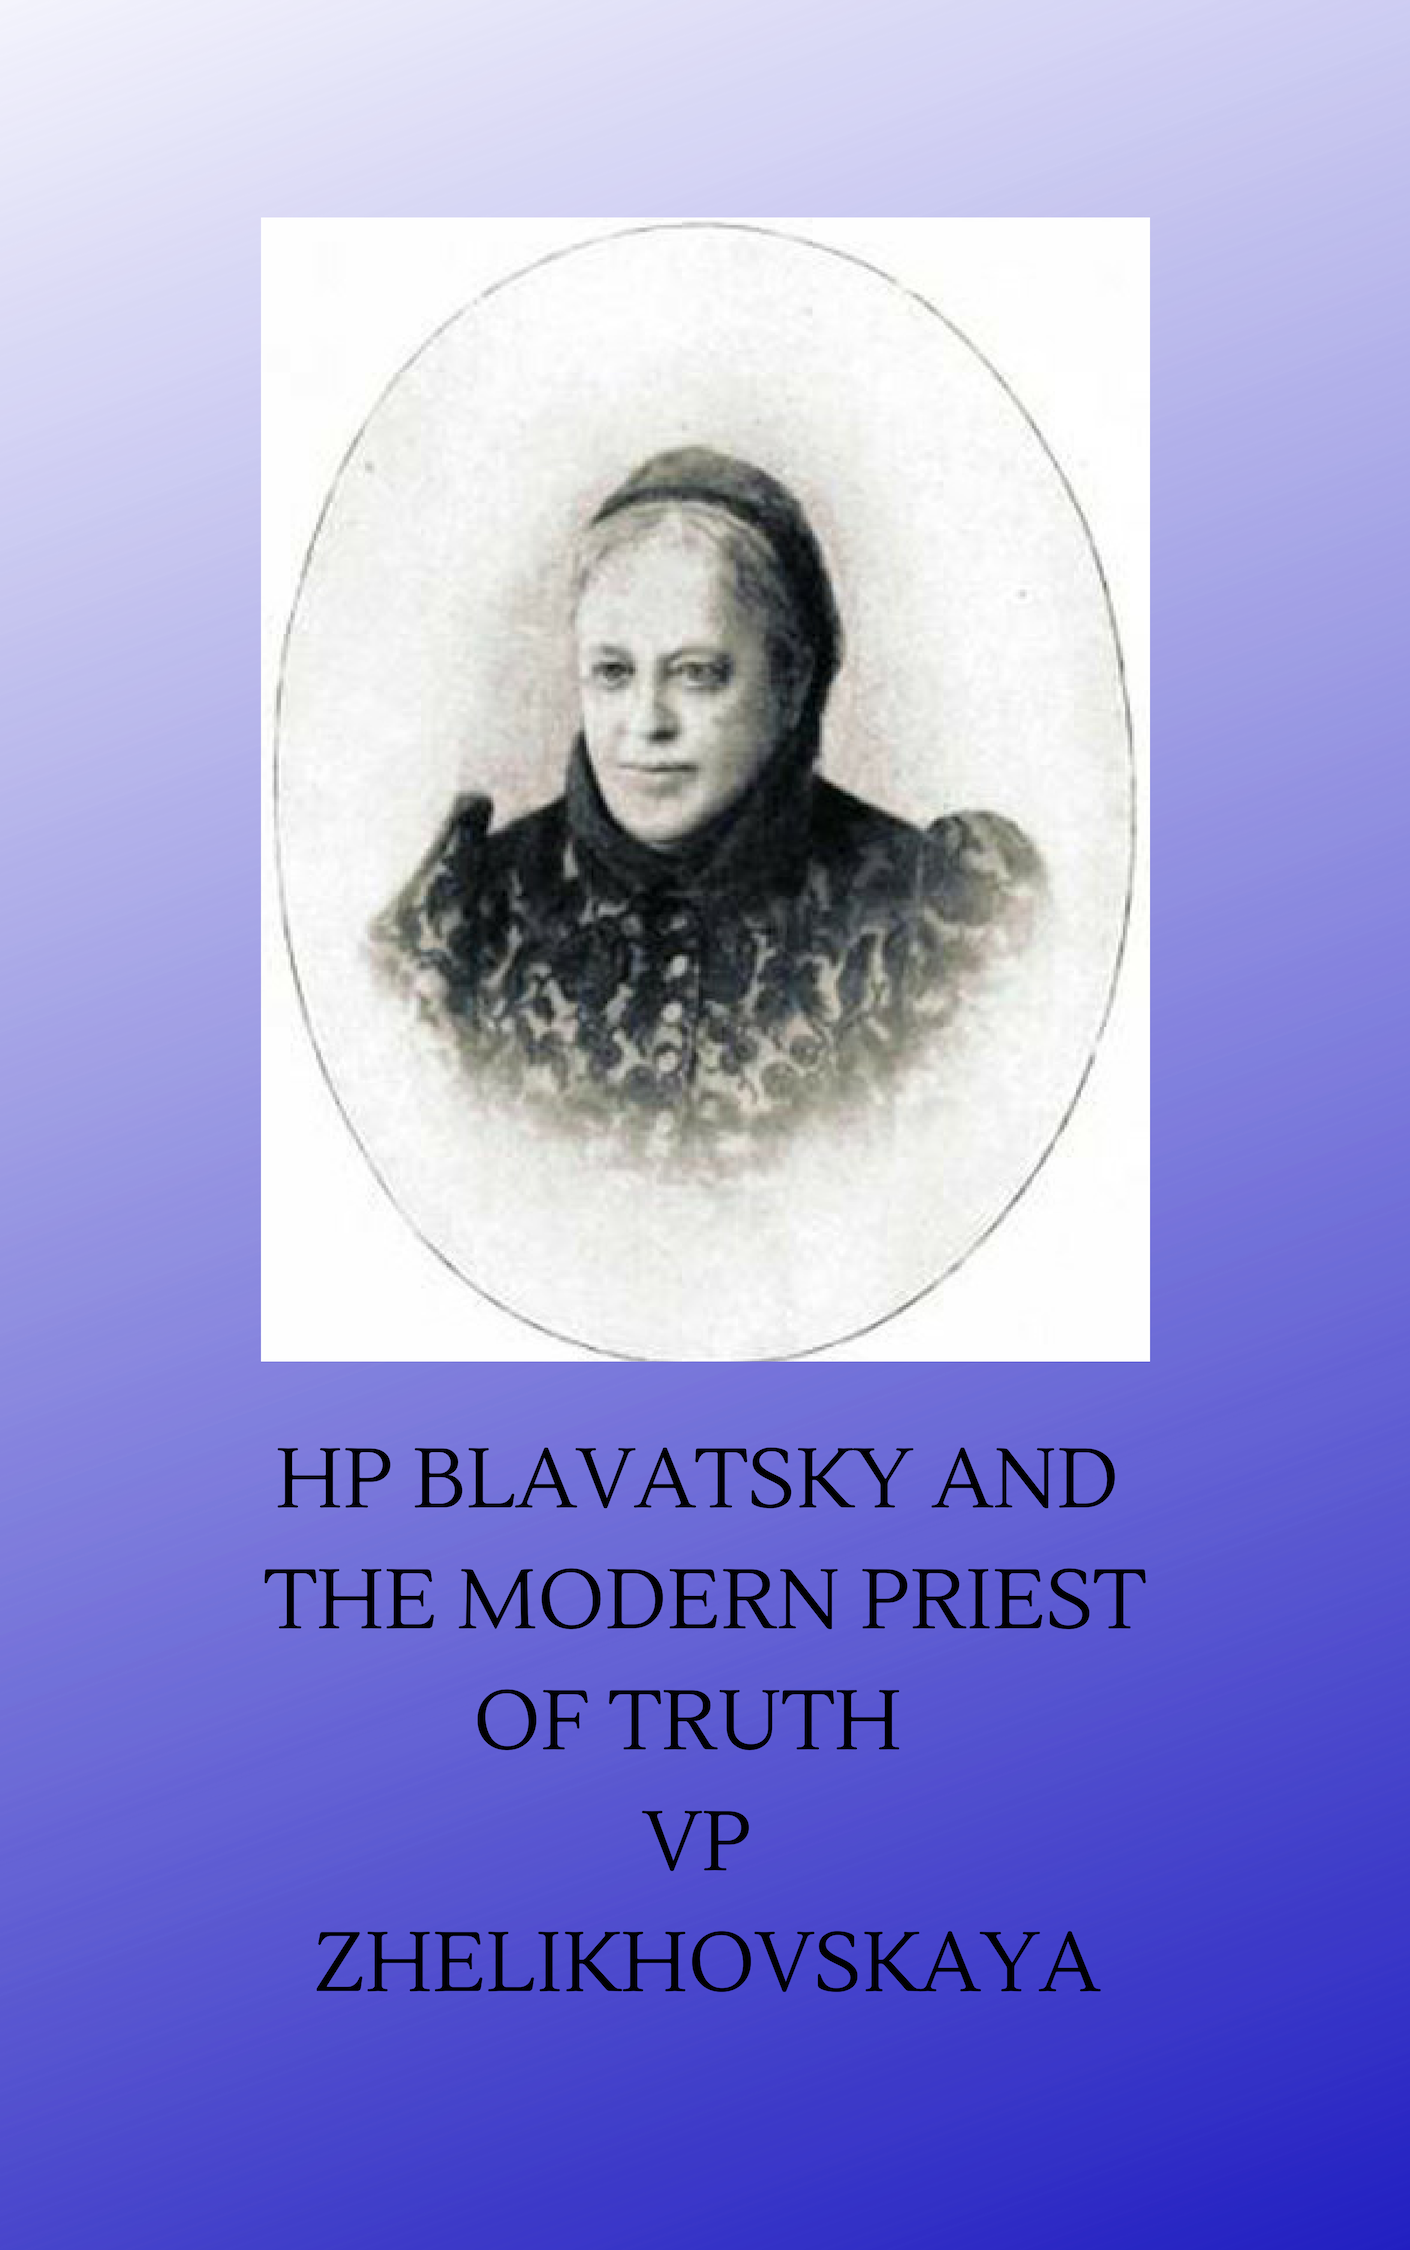 HP Blavatsky  and the Modern Priest of Truth:  Reply of Mrs. Ygrek (V.P. Zhelikhovskaya) to Mr. Vsevolod Solovyov ch. 5-7